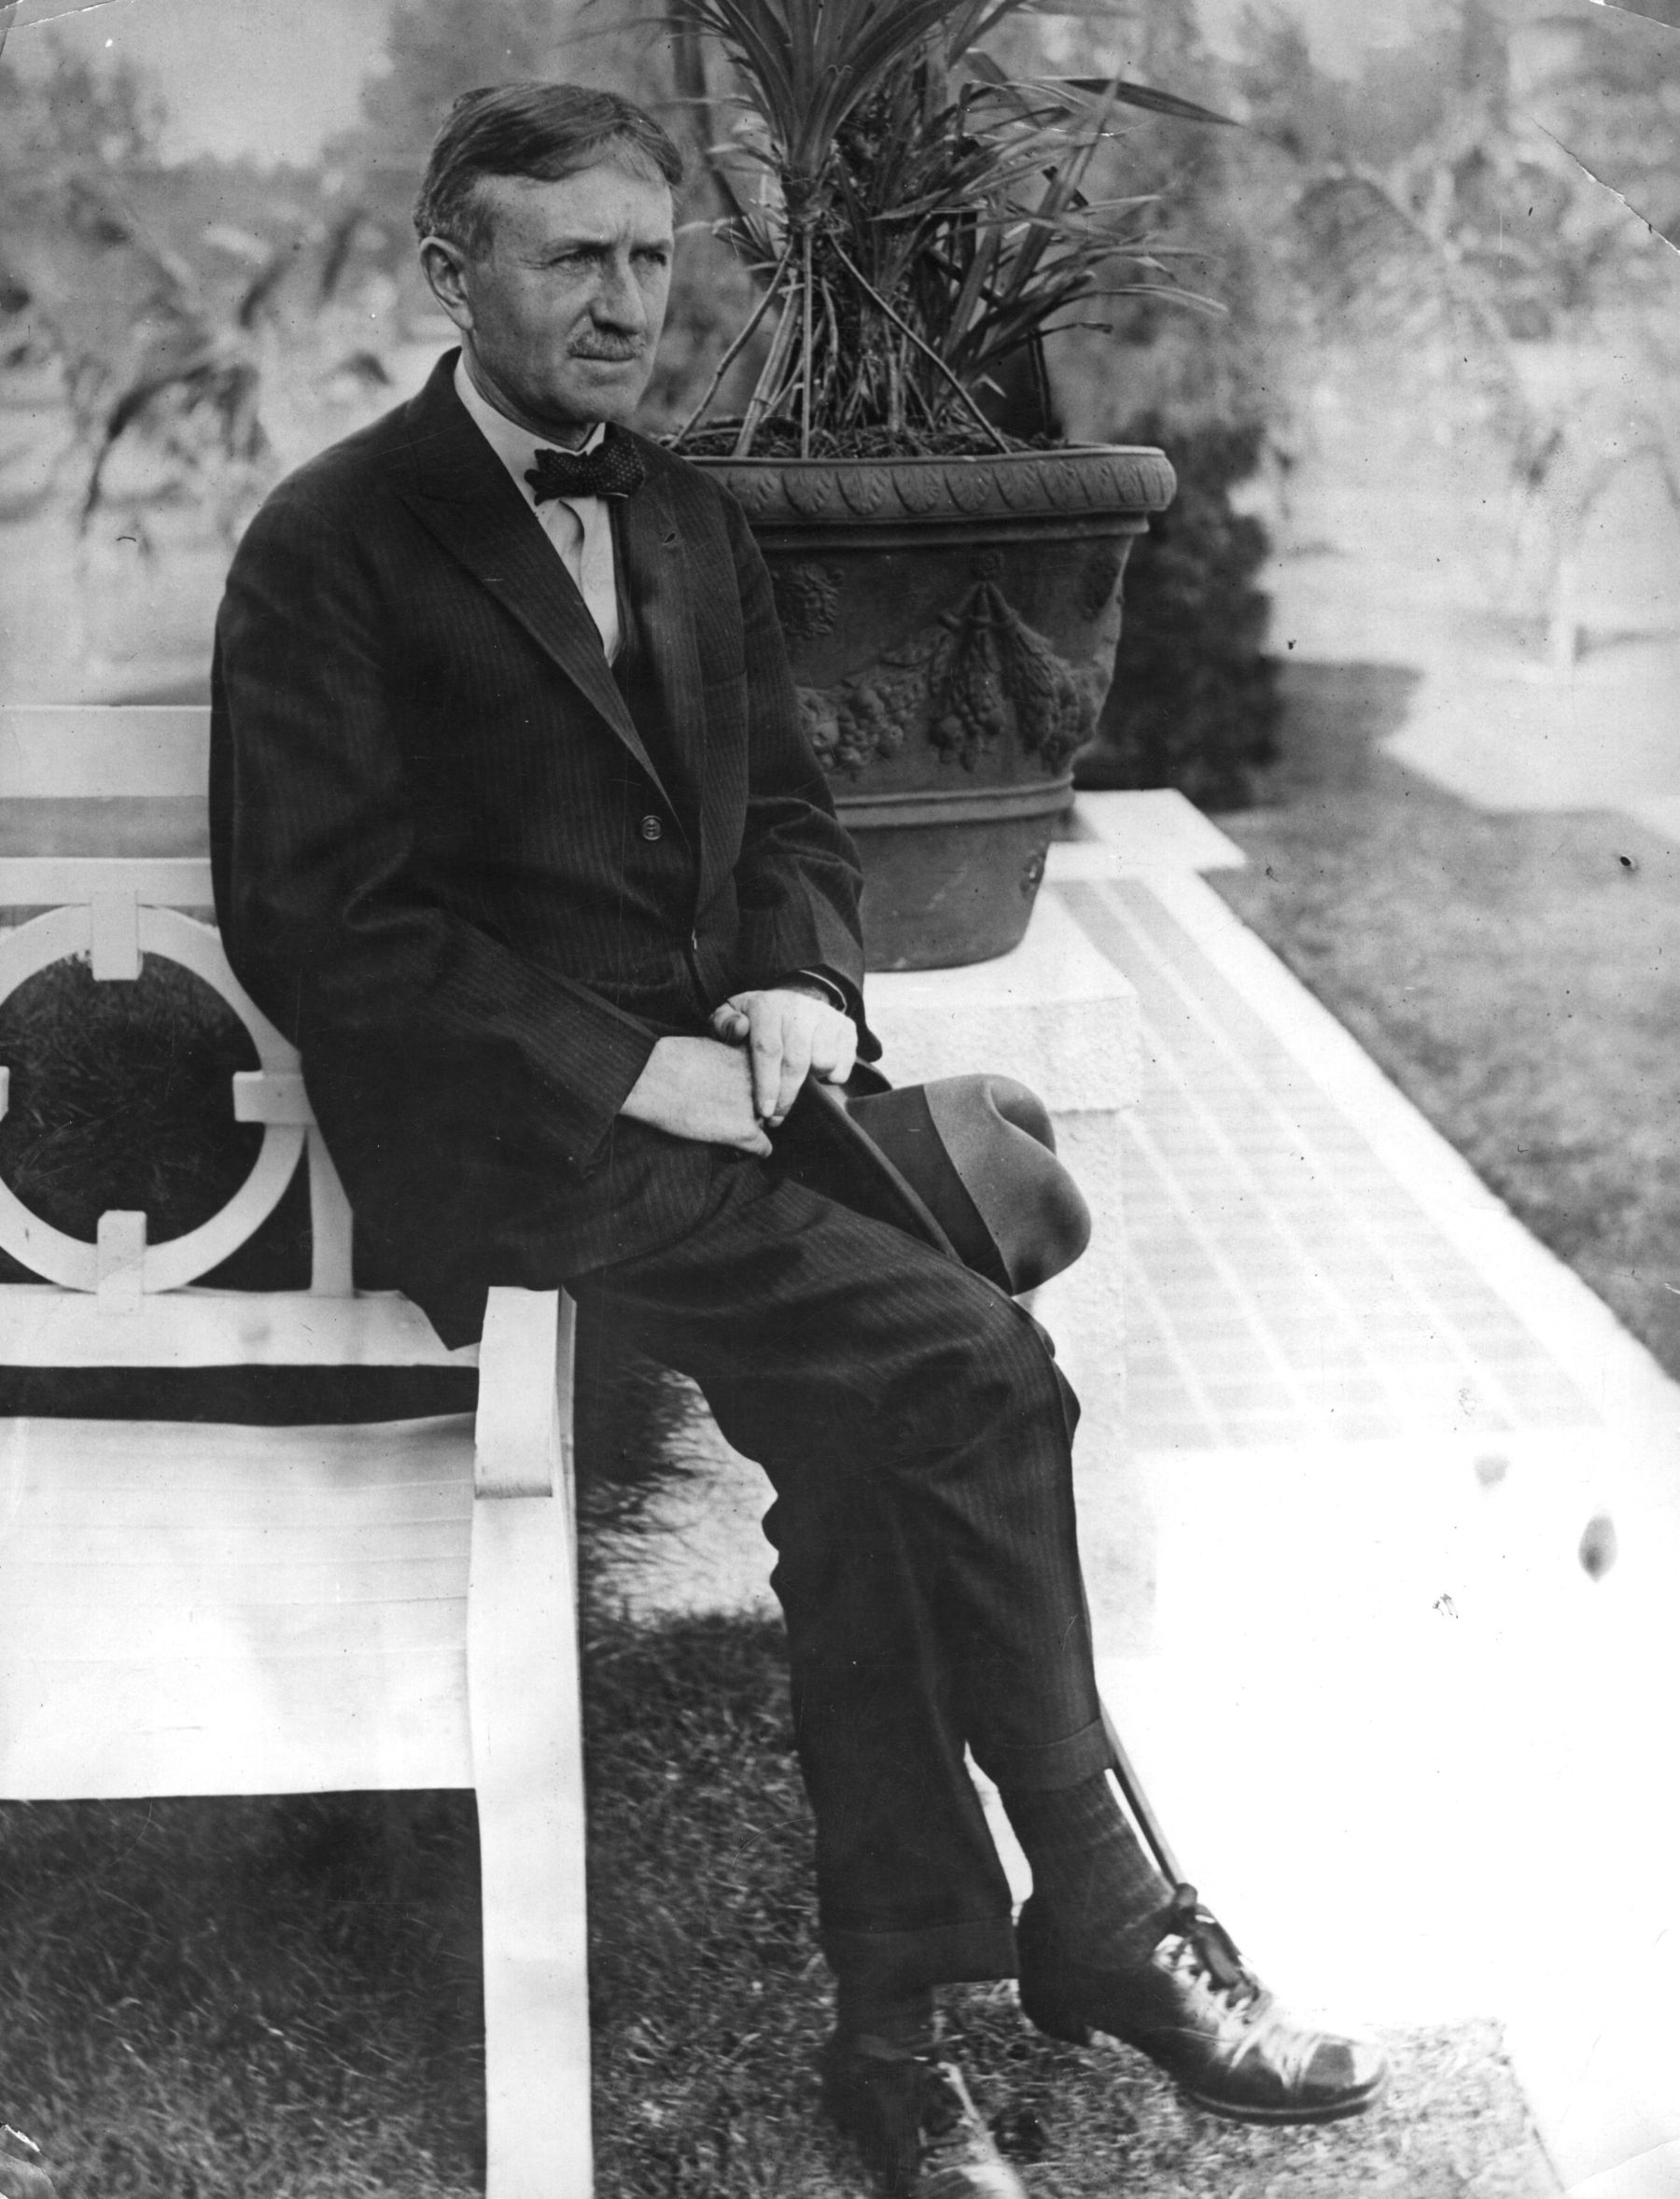 The American industrialist, Harvey Firestone (1868-1932). Original Publication: People Disc - (Photo by General Photographic Agency/Getty Images)